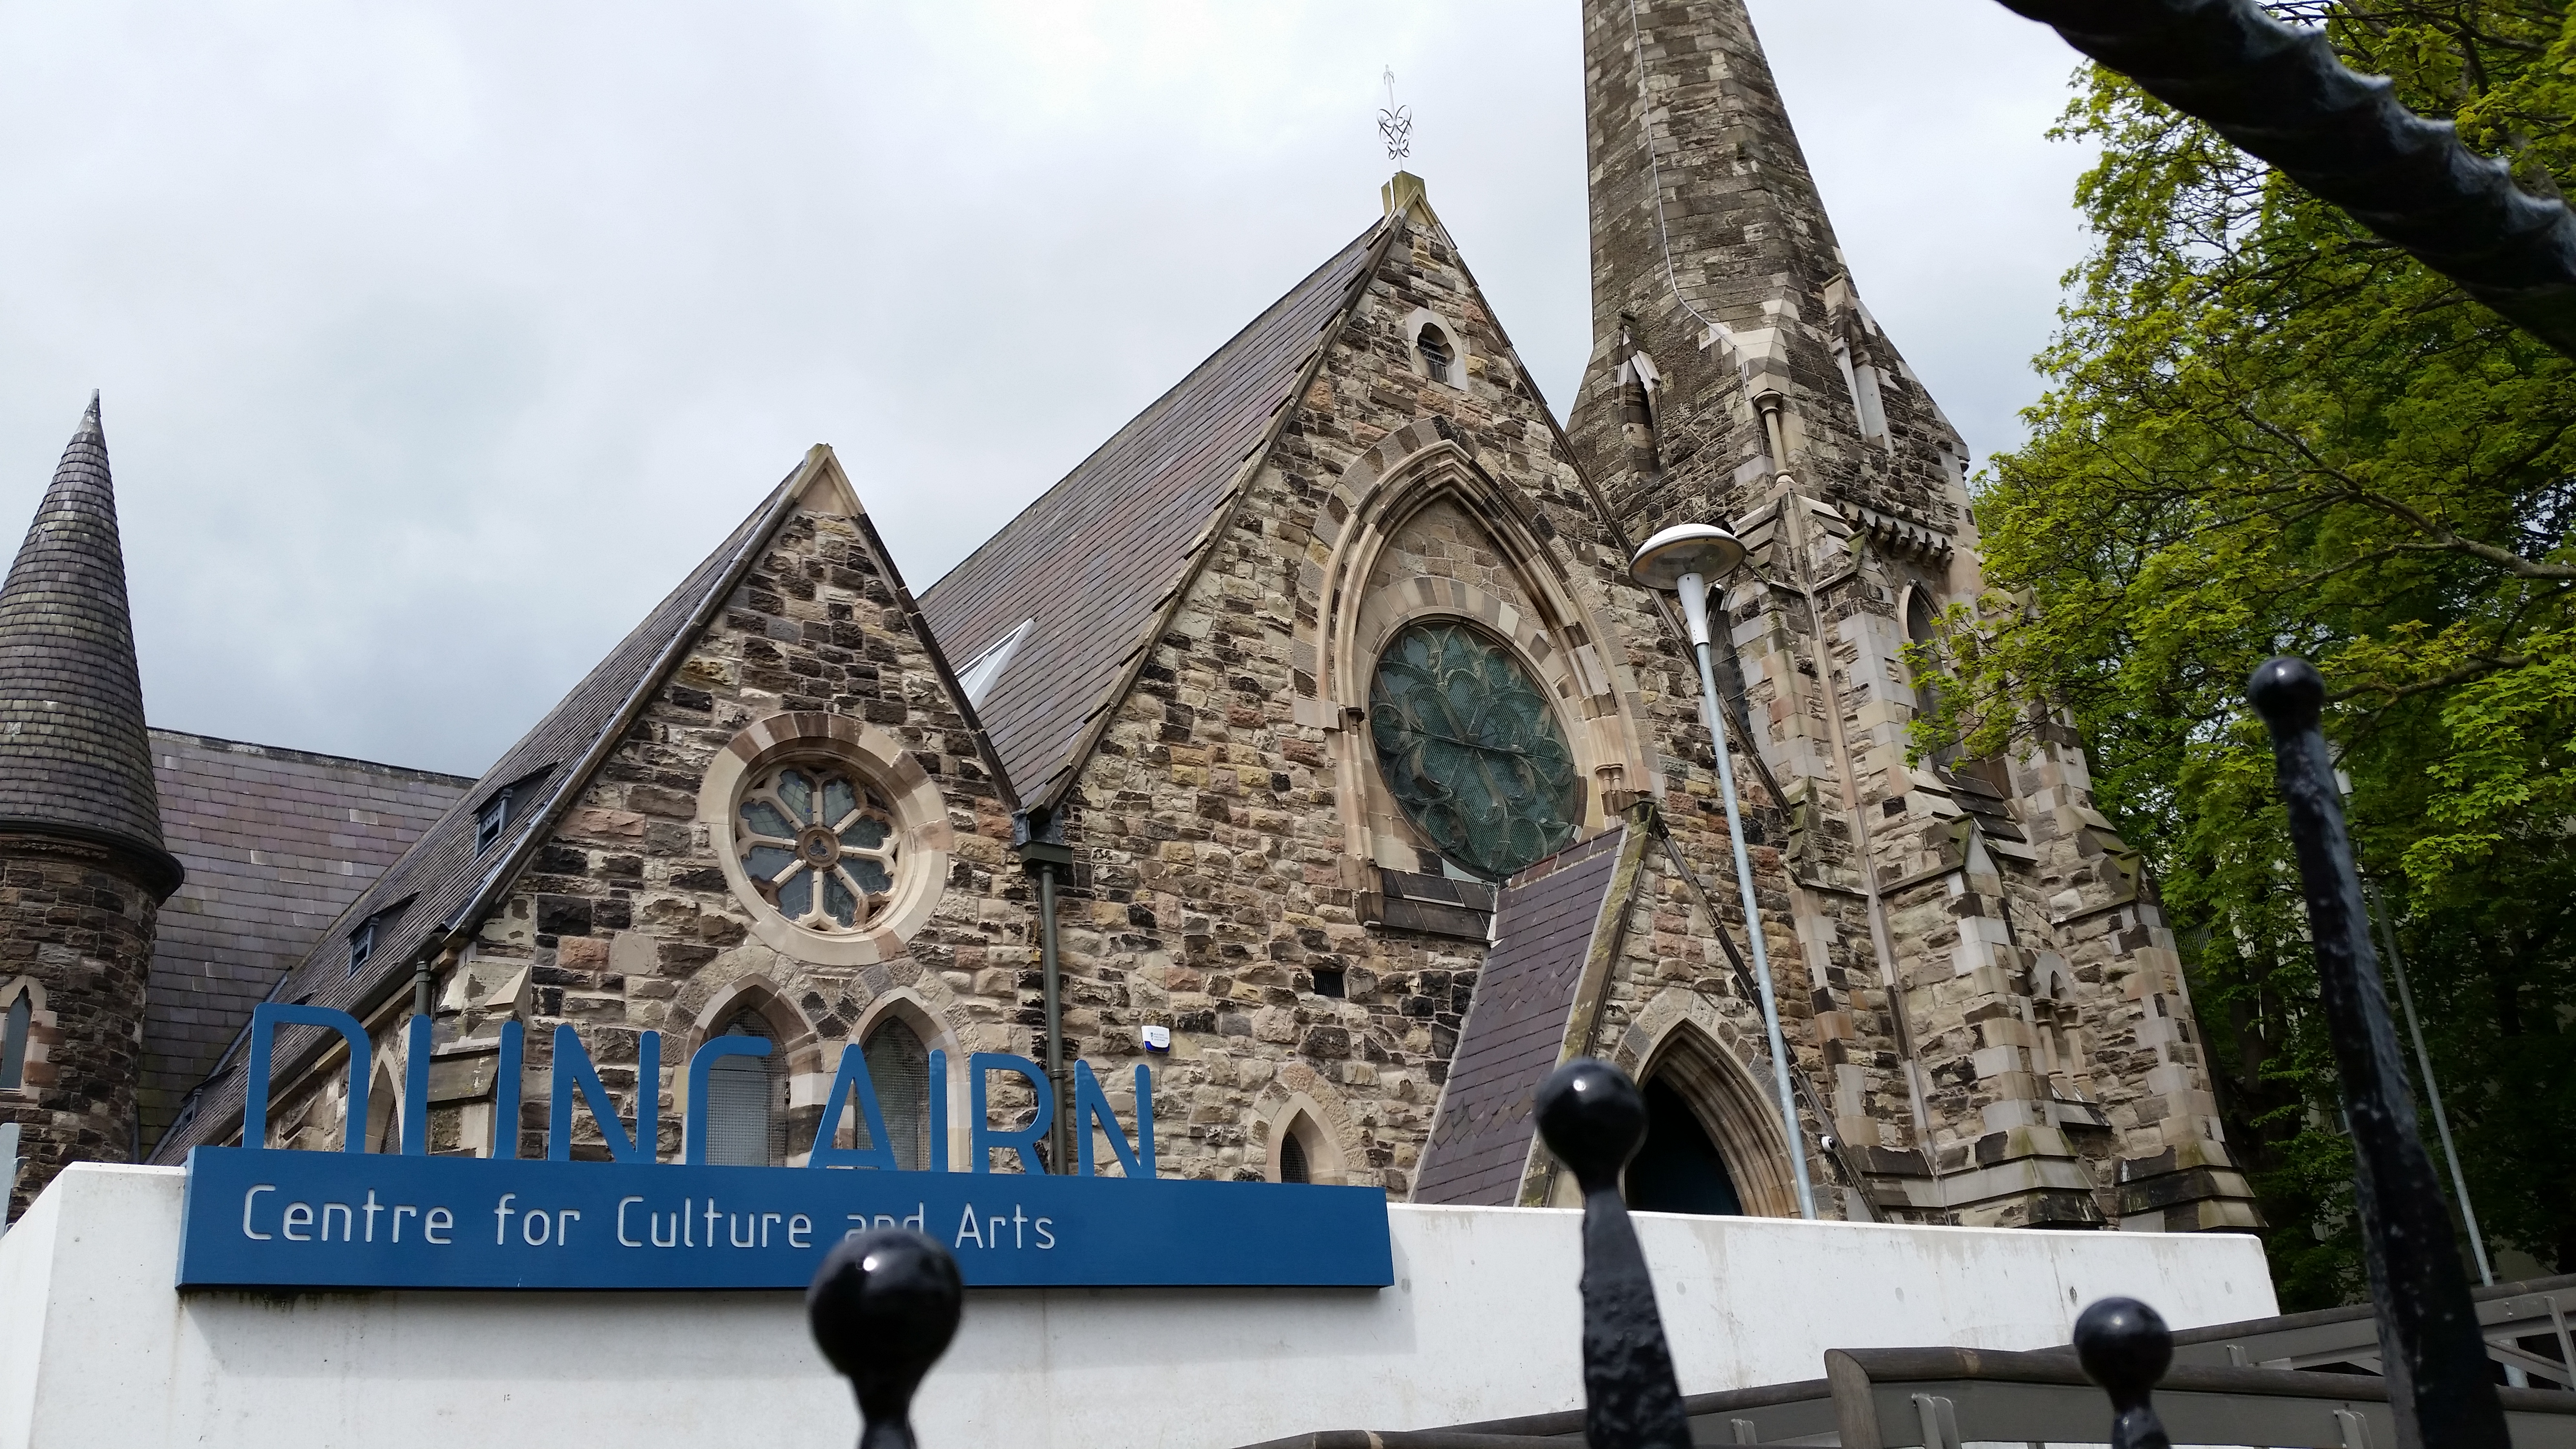 Duncairn Centre for Culture and Arts, 174 Trust